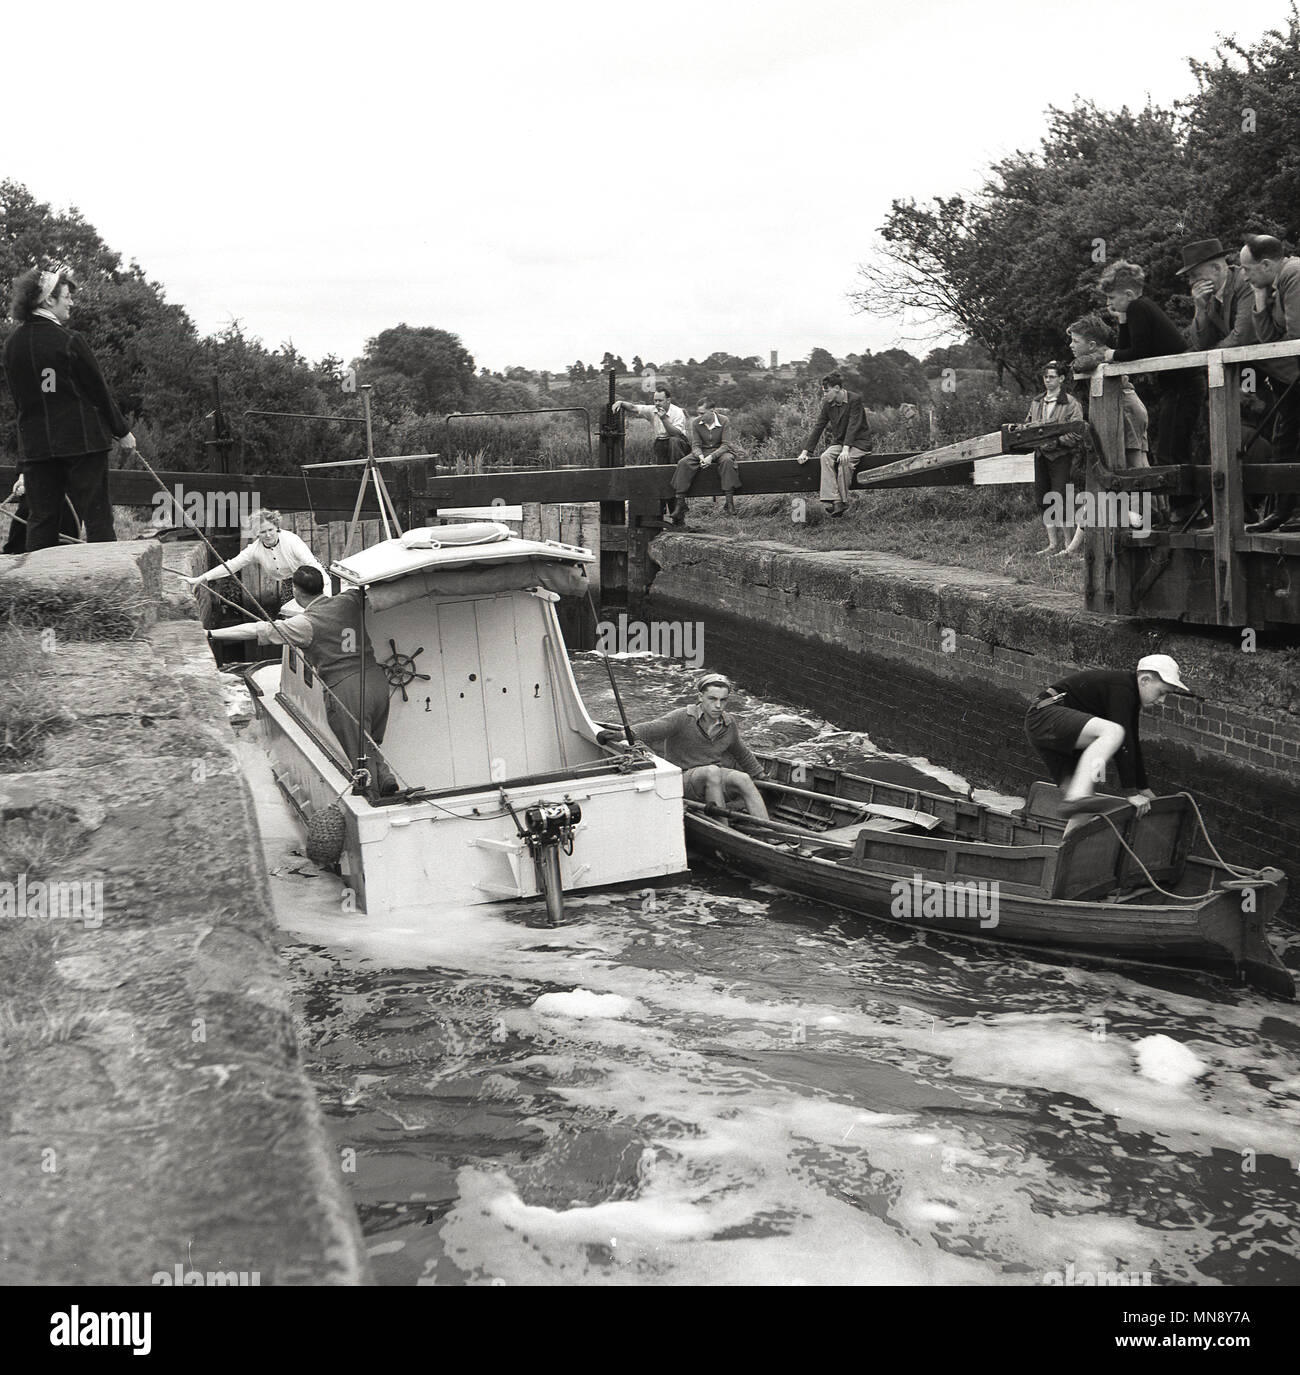 1950s, historical, people look on as a small motorboat and a wooden rowing boat try to manoeuvre pass each other on a rural canal lock, England, UK. - Stock Image